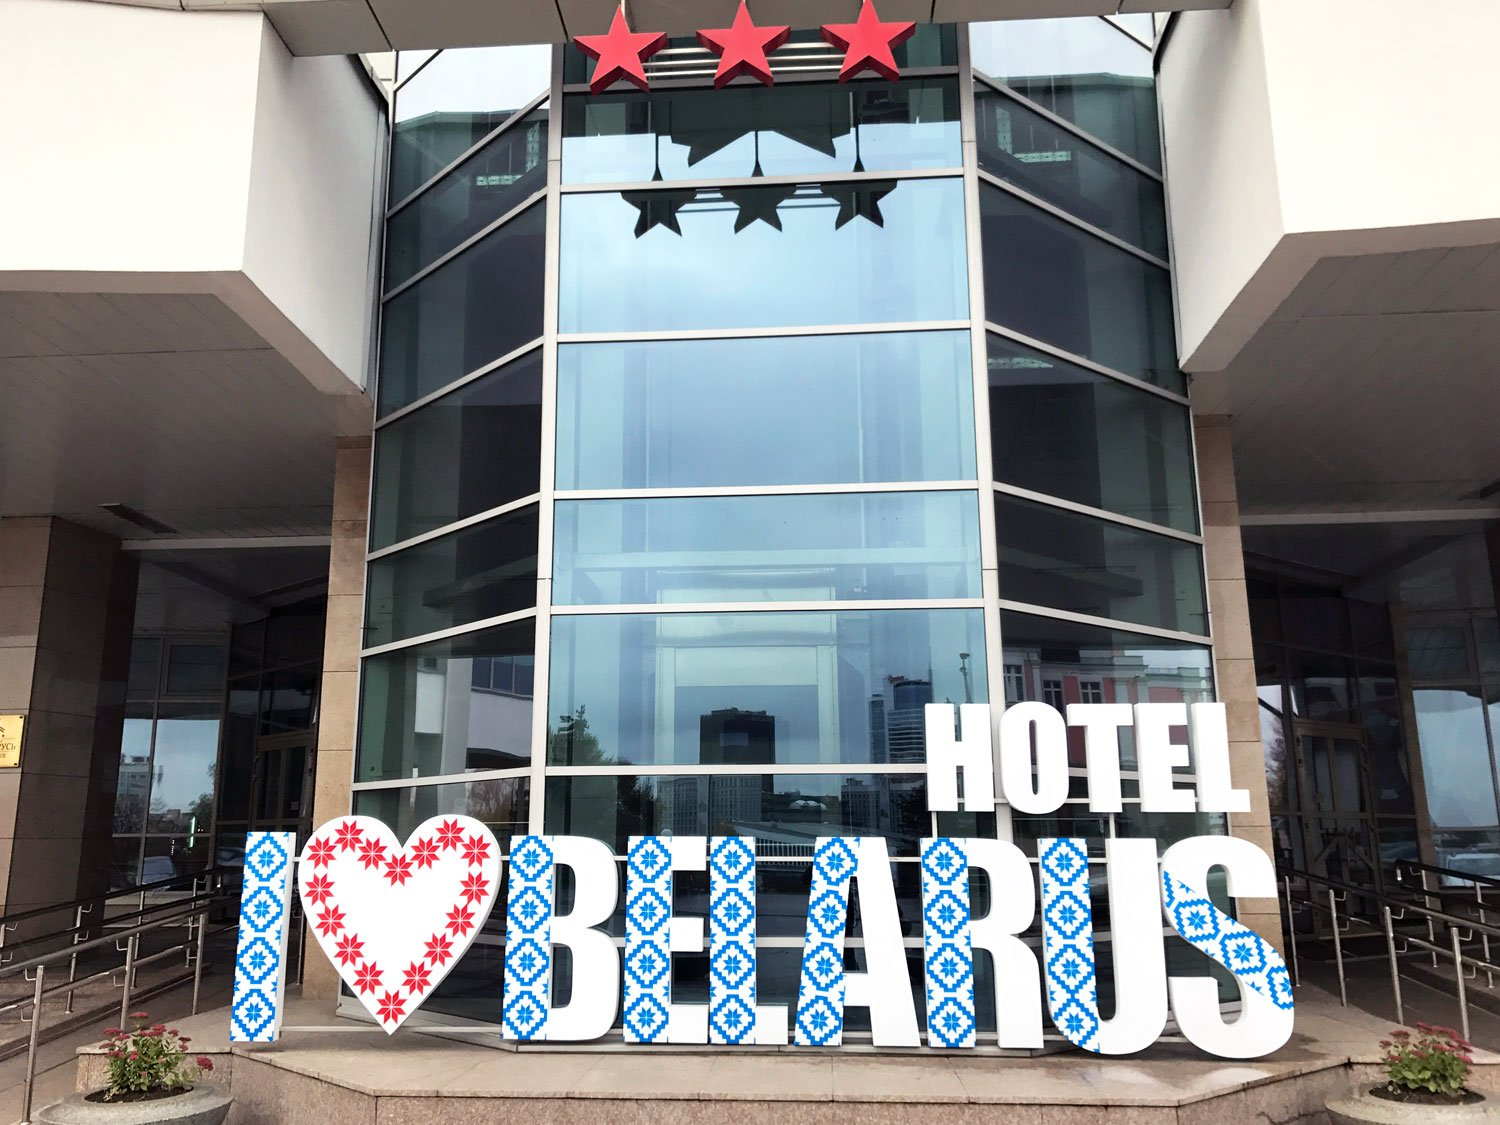 """Hotel Belarus with an I """"heart"""" Hotel Belarus sign in front and three red stars, indicating the class of the hotel"""